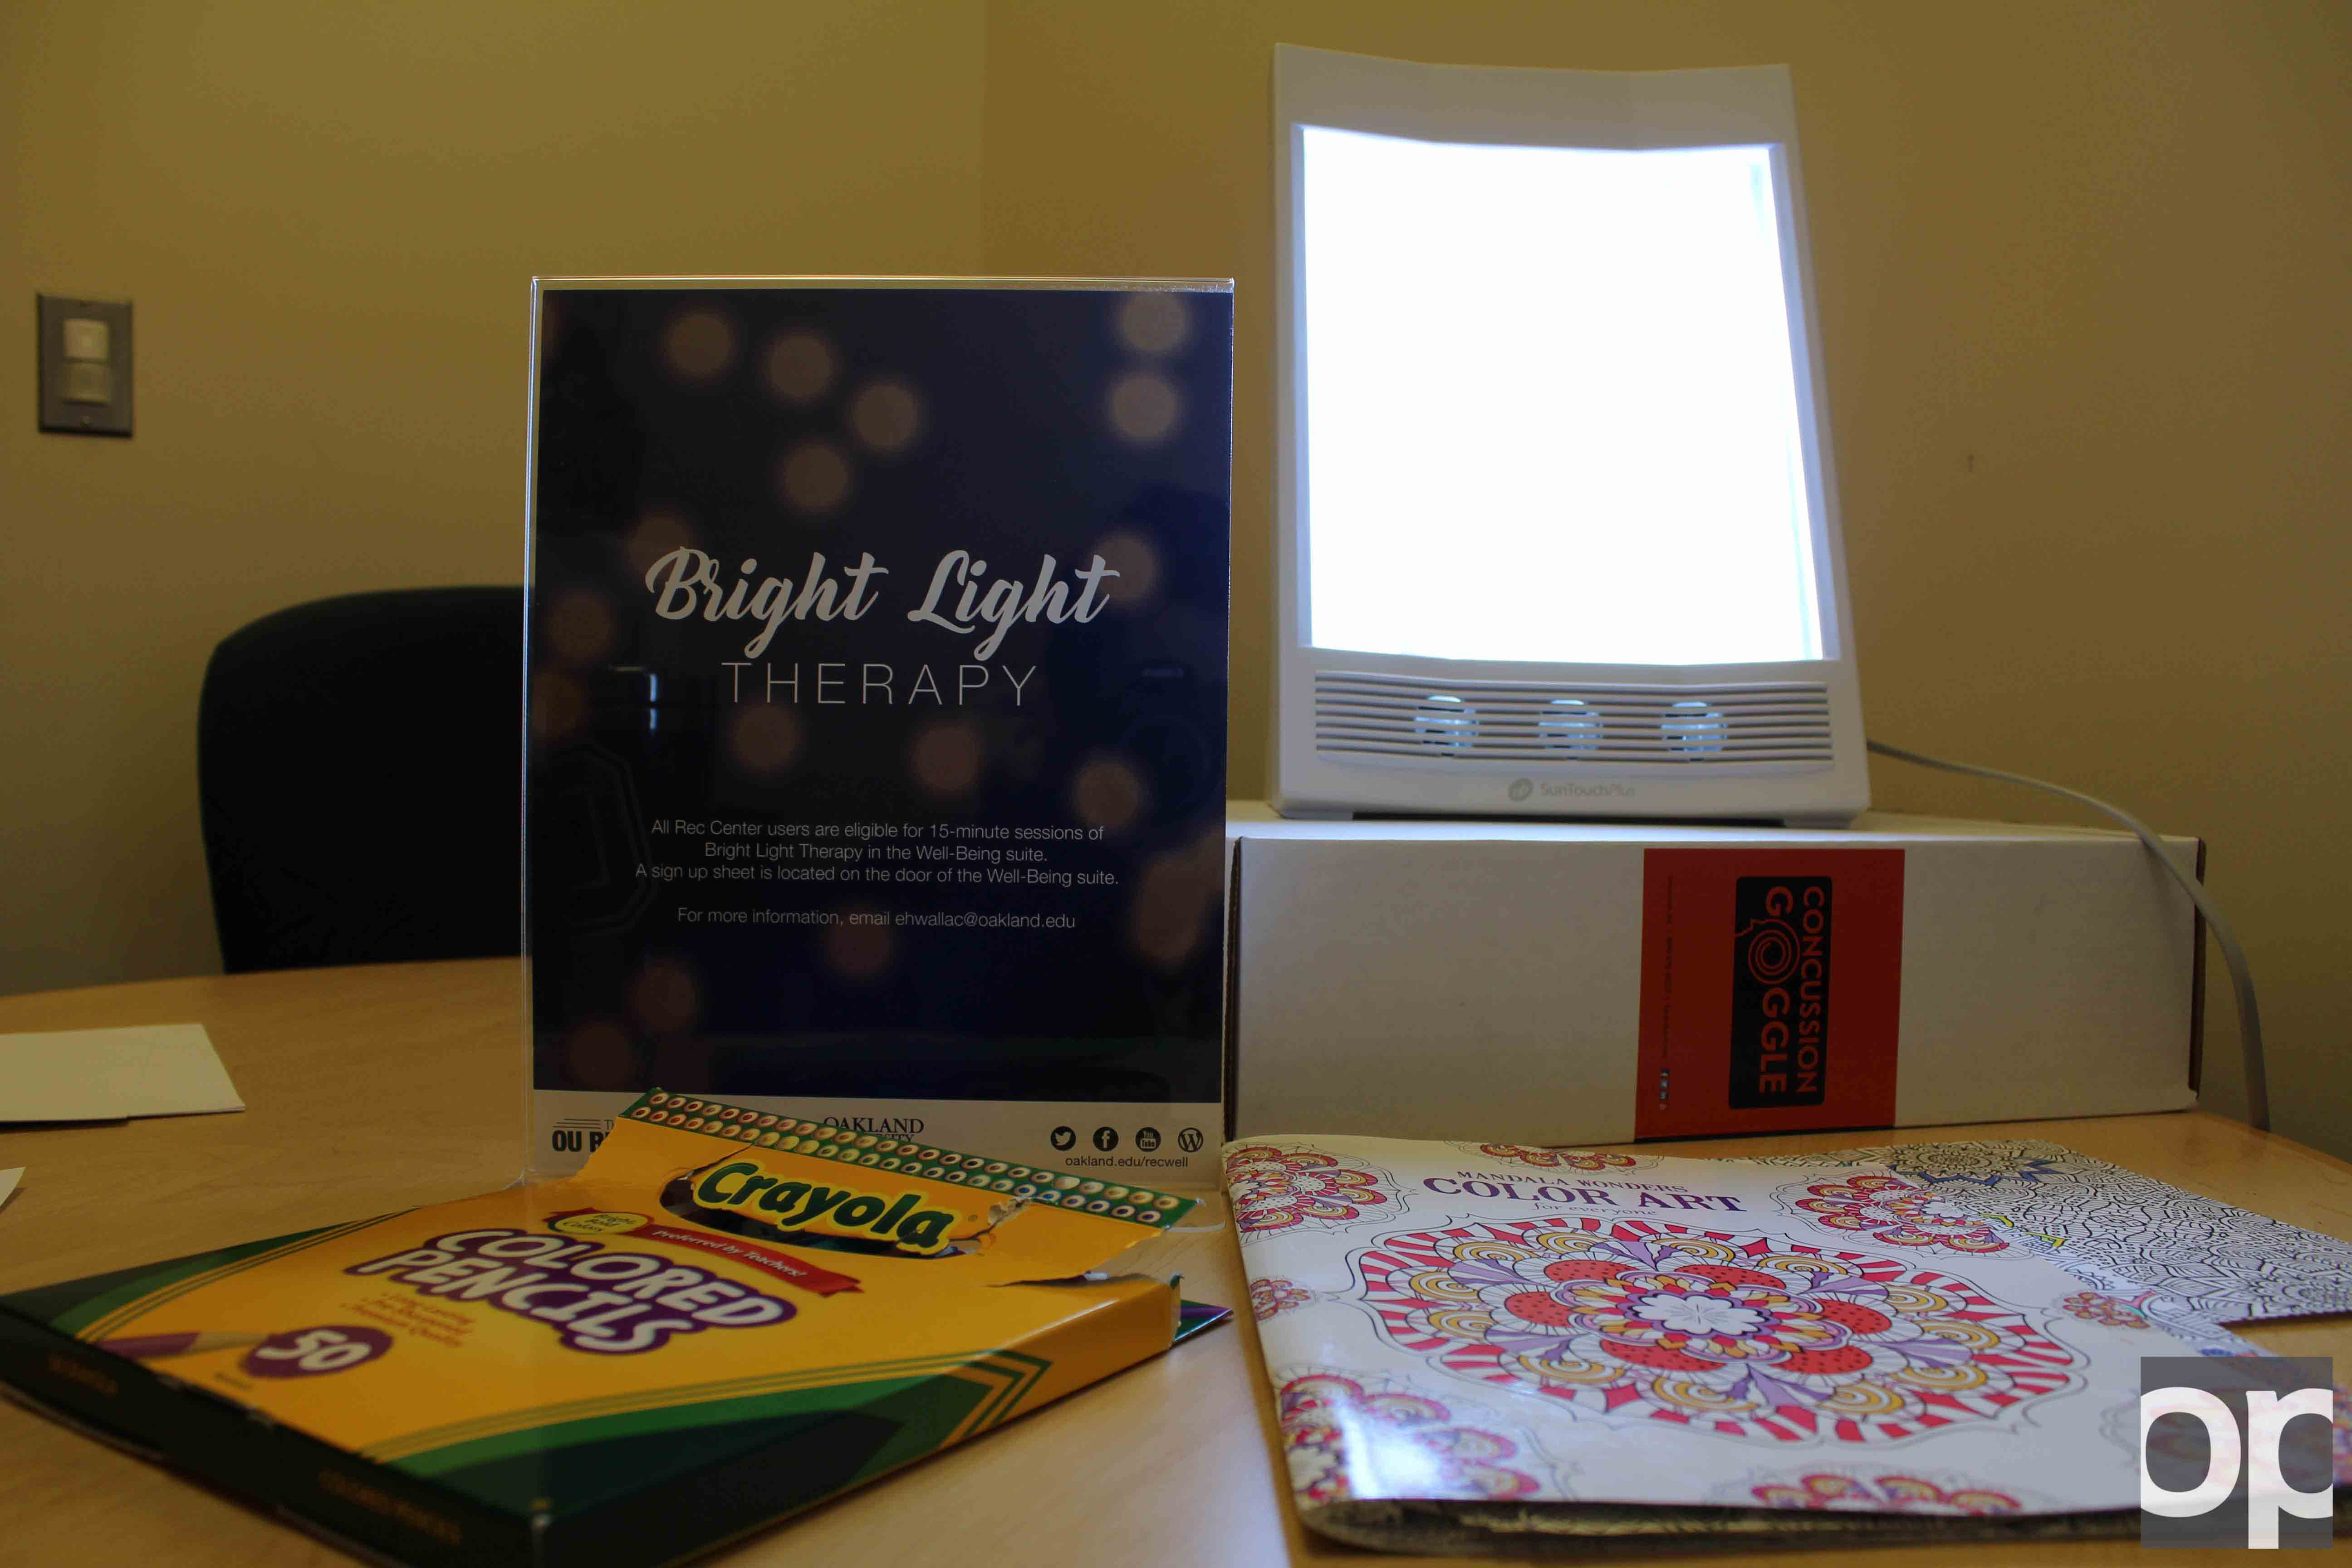 Bright light lamp therapy provides a source of vitamin D, which is beneficial to our health.